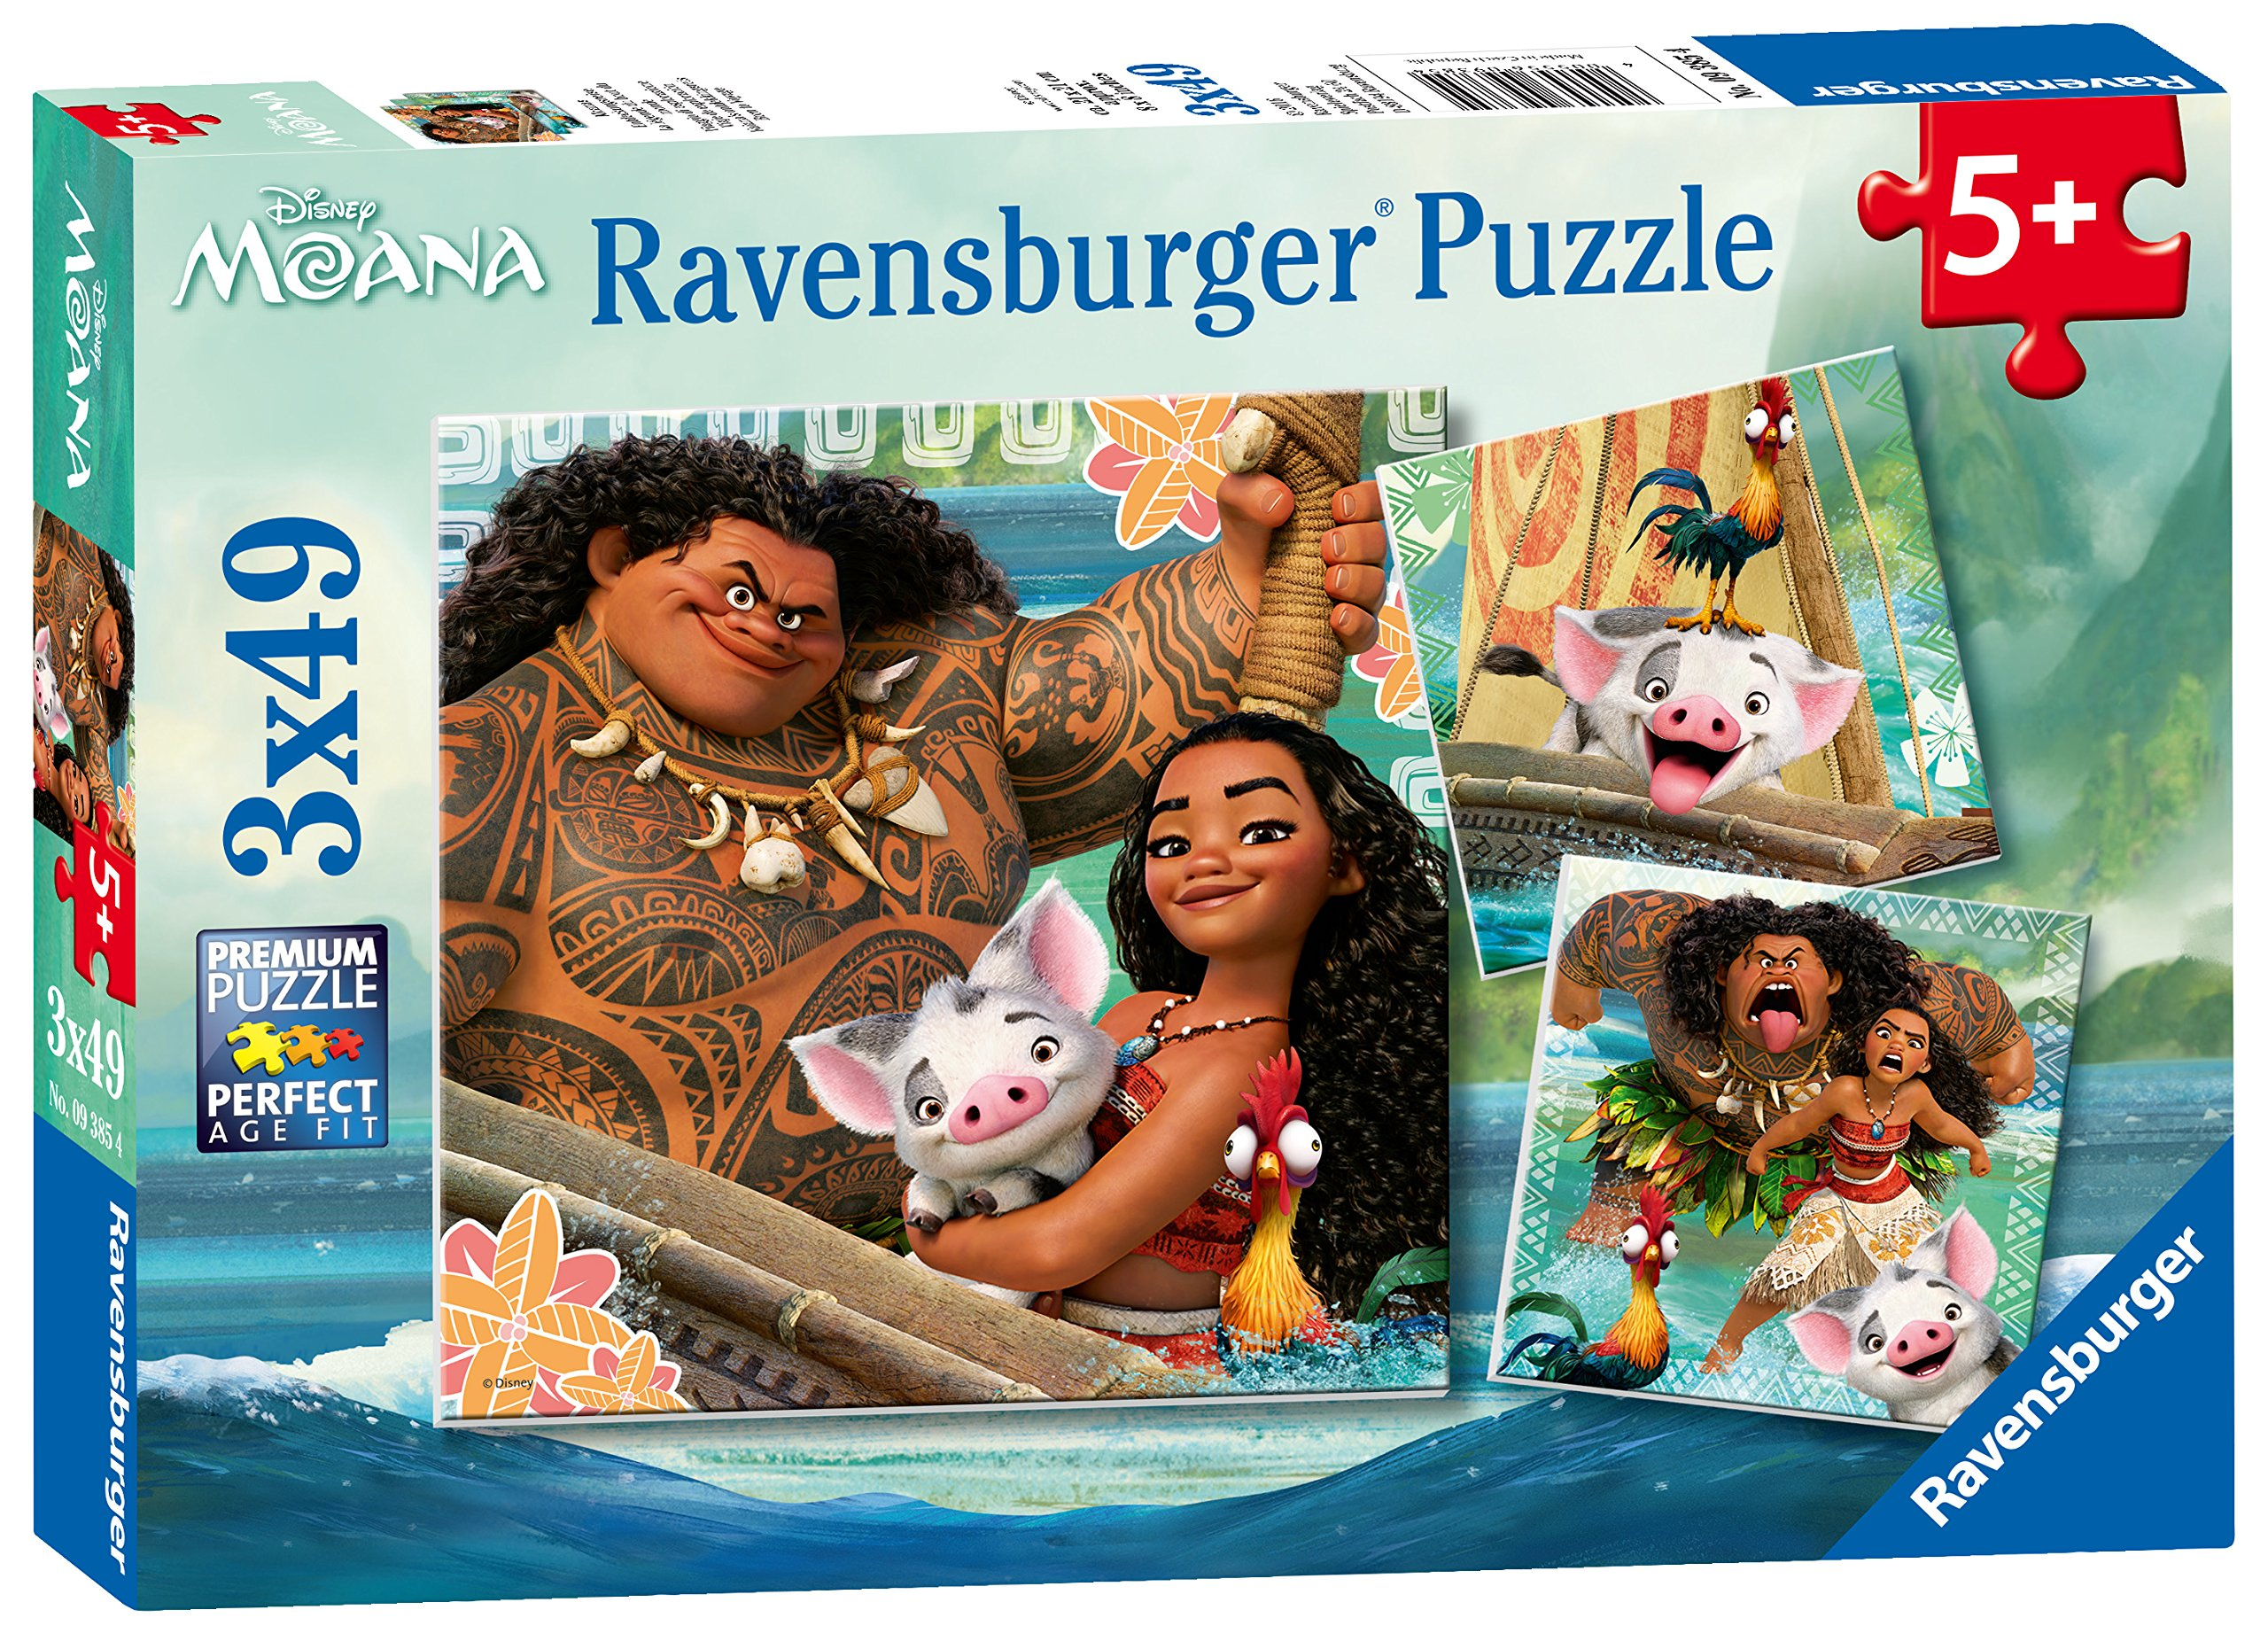 Ravensburger Disney Moana Born To Voyage 49 Piece Jigsaw Puzzle for Kids – Every Piece is Unique, Pieces Fit Together Perfectly by Ravensburger (Image #1)